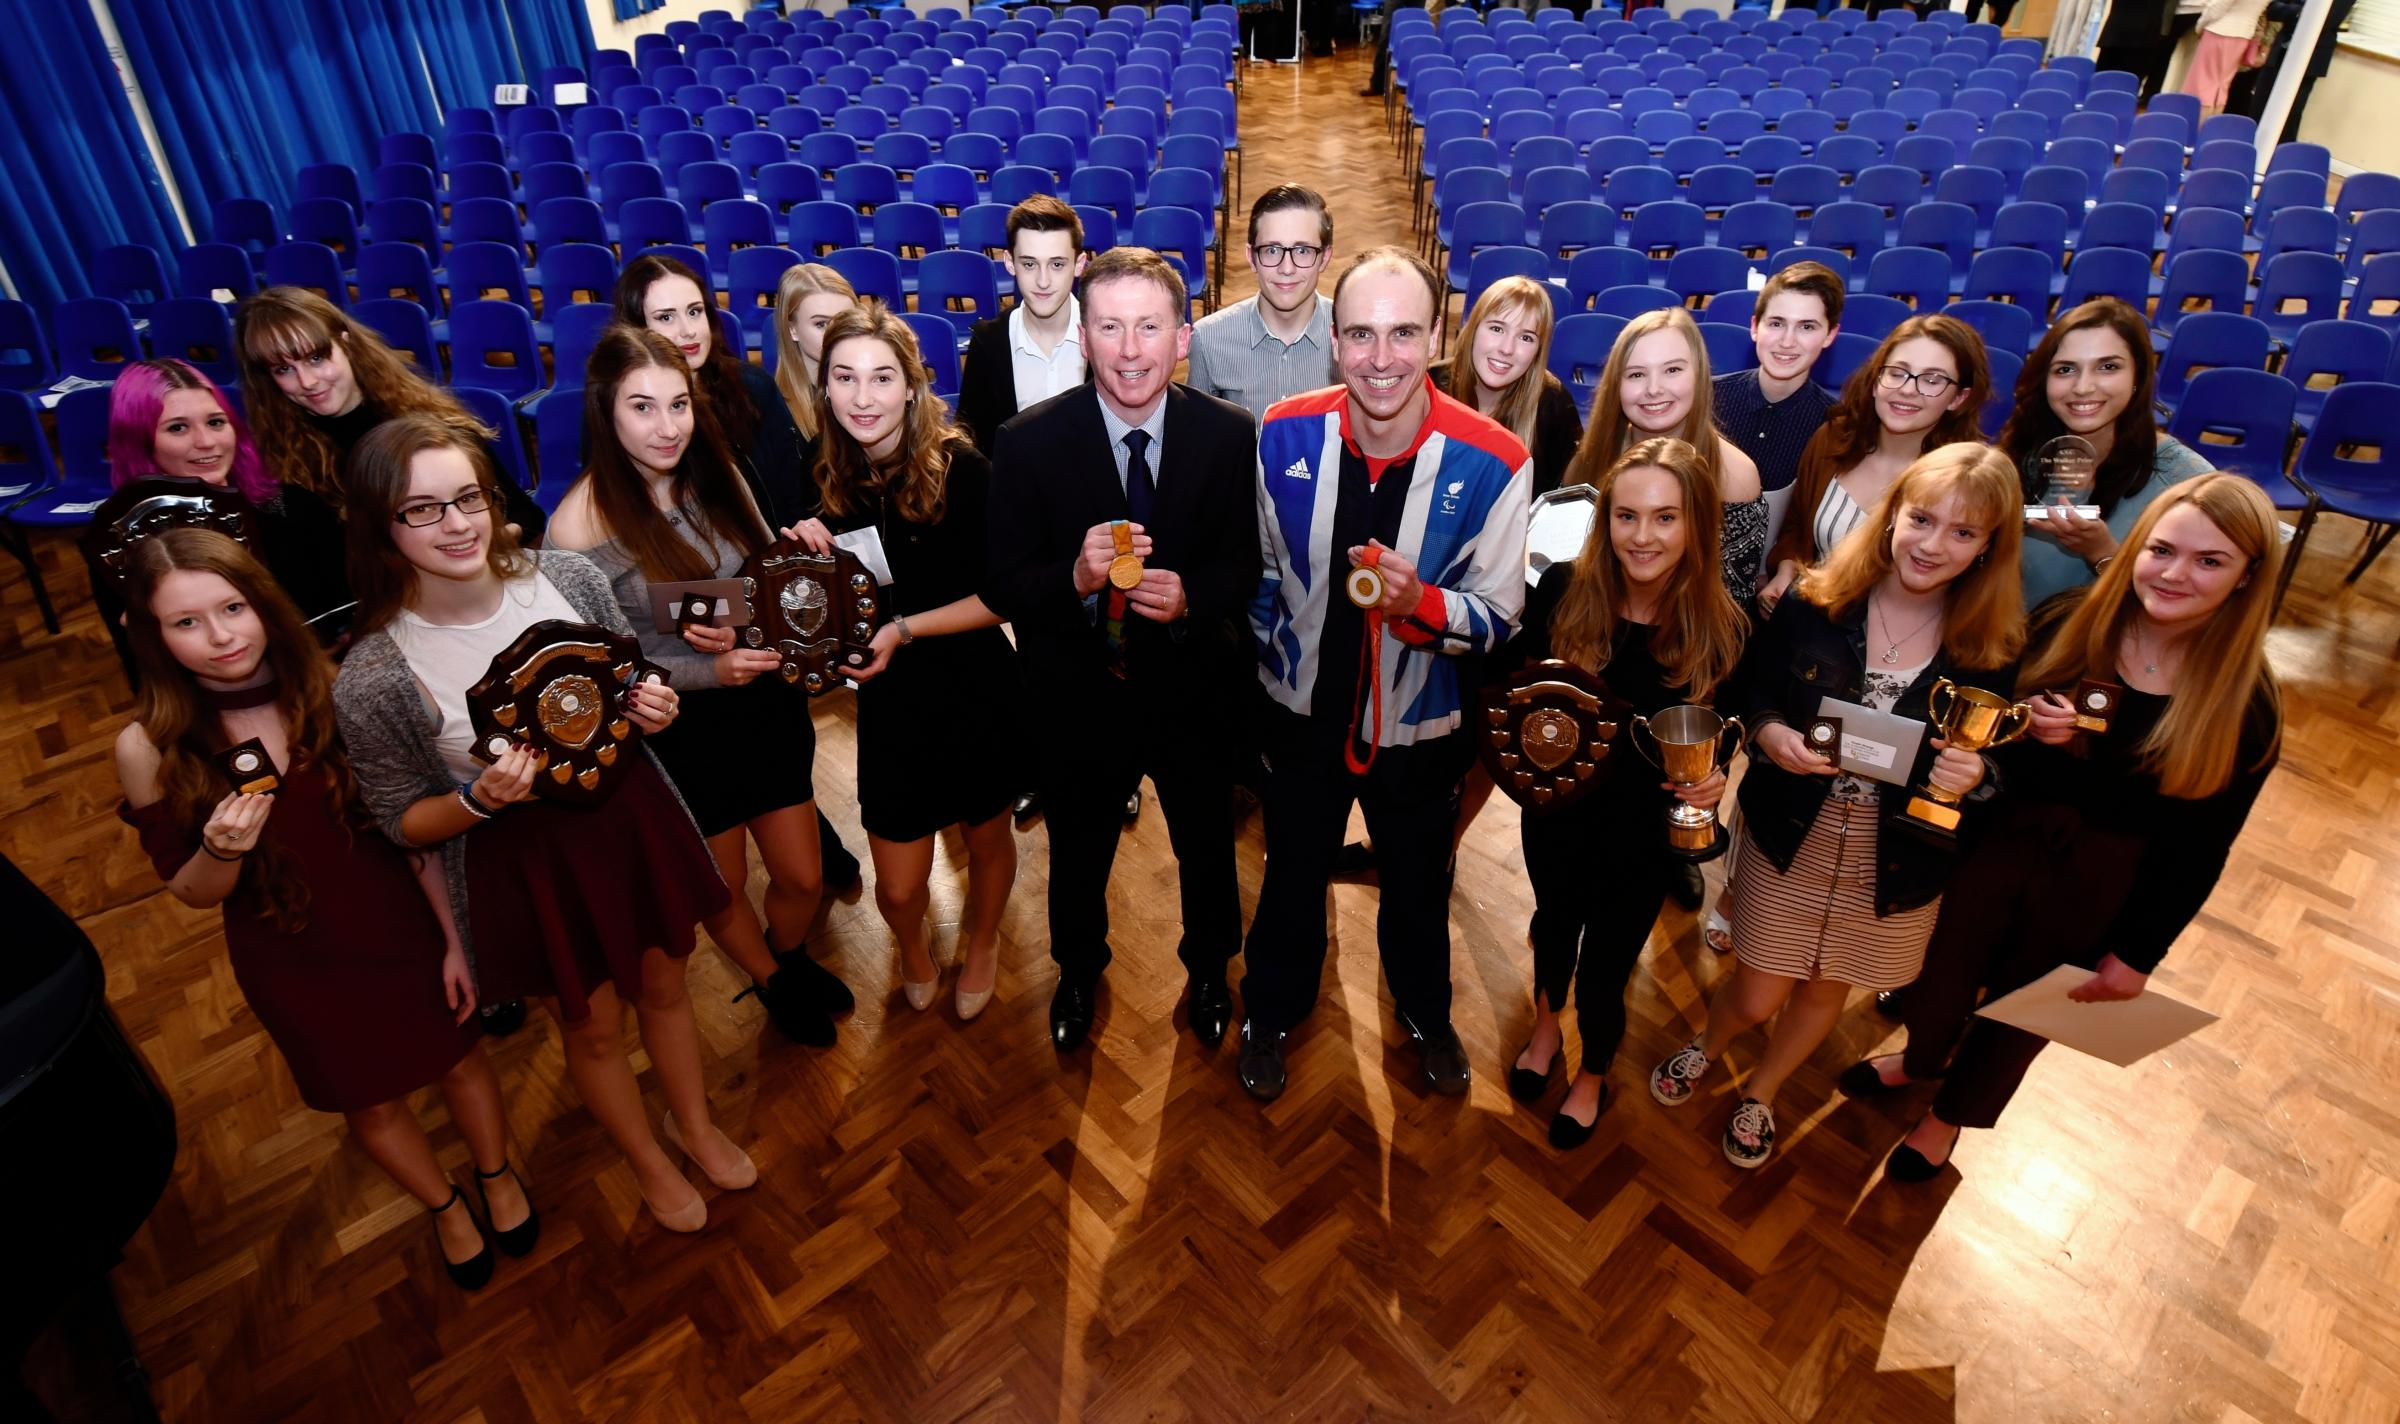 Aldworth School, Basingstoke.2017 Prize Presentation Evening.Special guest Graham Edmunds who has competed in three Paralympic Games, winning two gold medals in world record times.Photograph By: Sean Dillow.www.TheBigCheesePhotography.co.uk